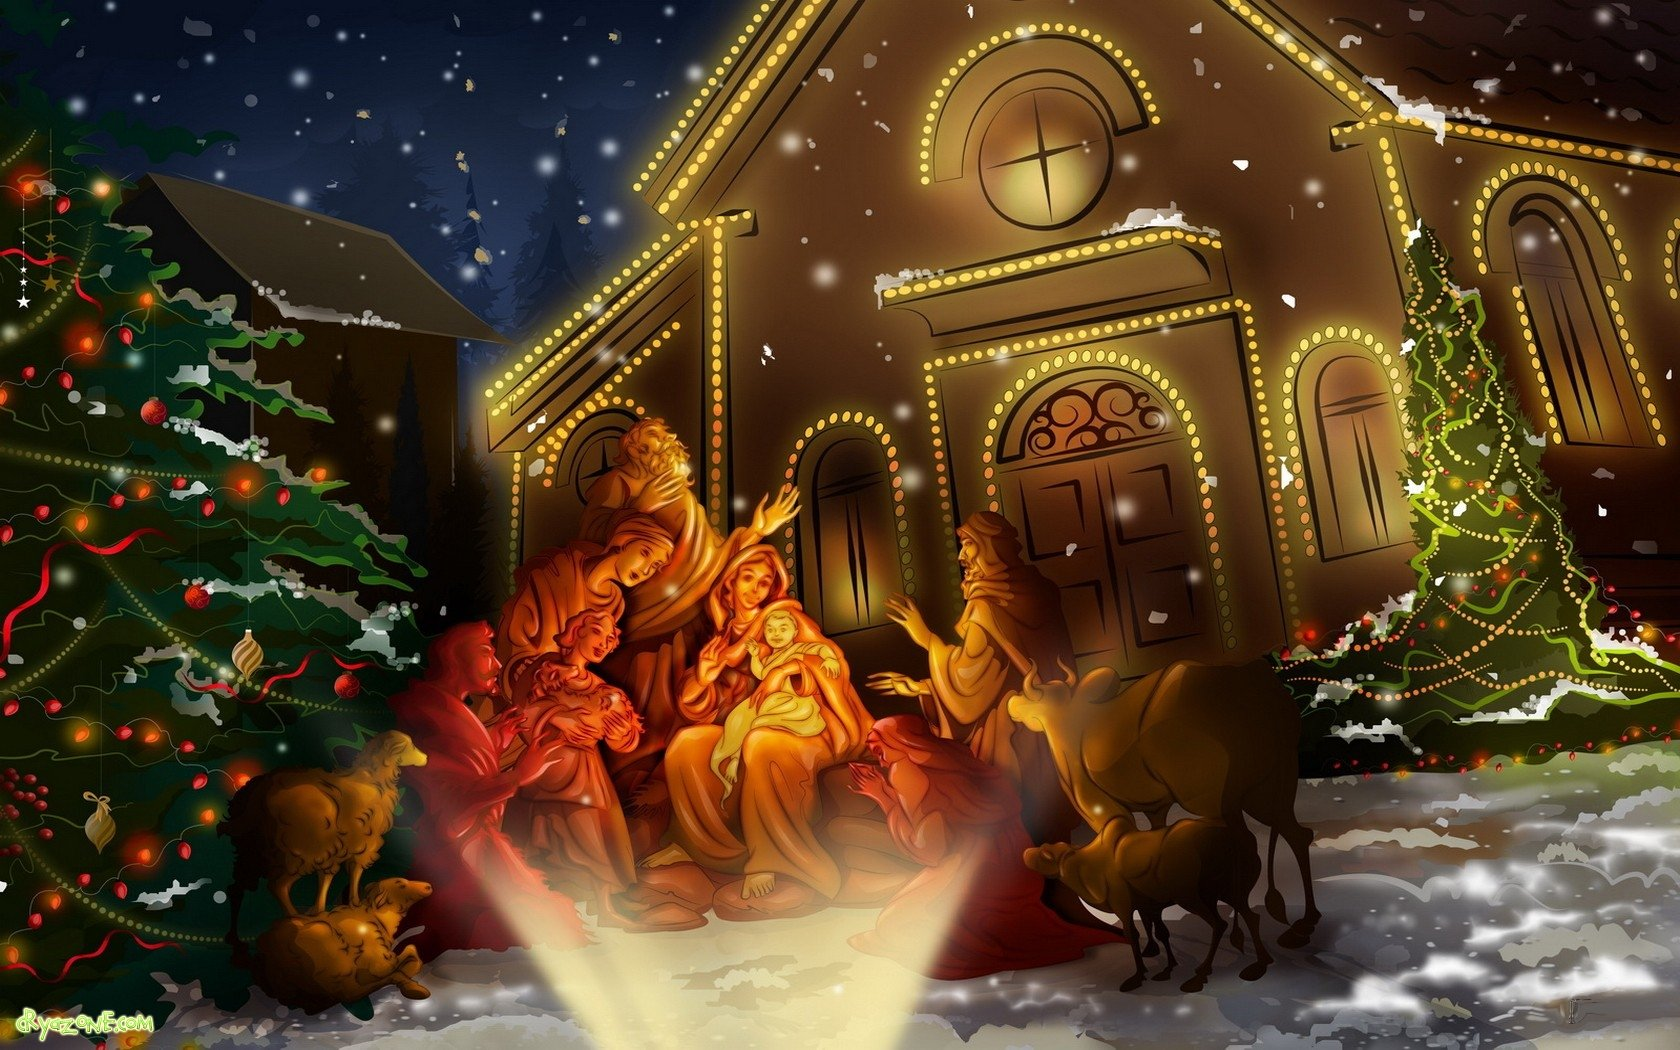 http://cryazone.com/uploads/posts/1226063196_christmas_and_newyear_wallpaper_7.jpg